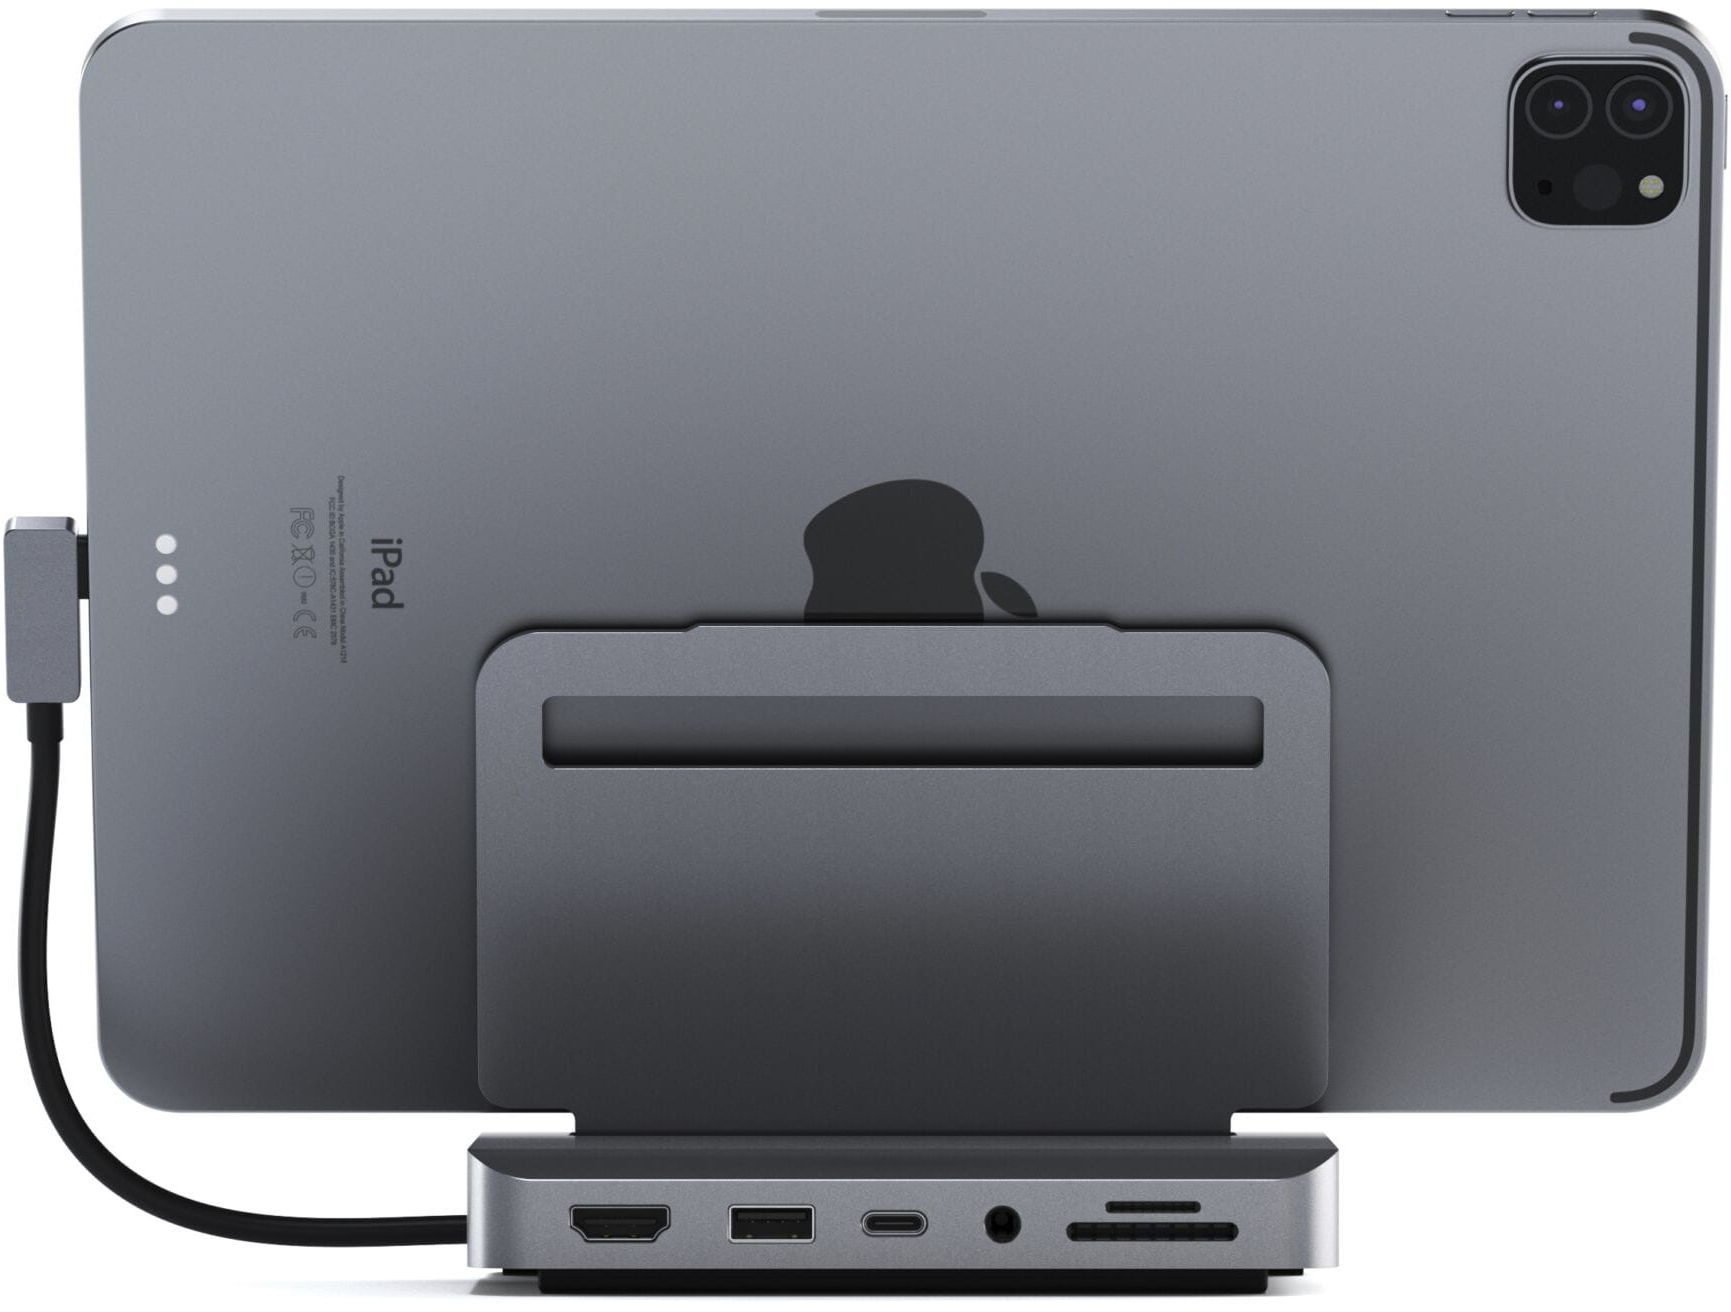 SATECHI Aluminum Stand Hub Space Gray for iPad Pro